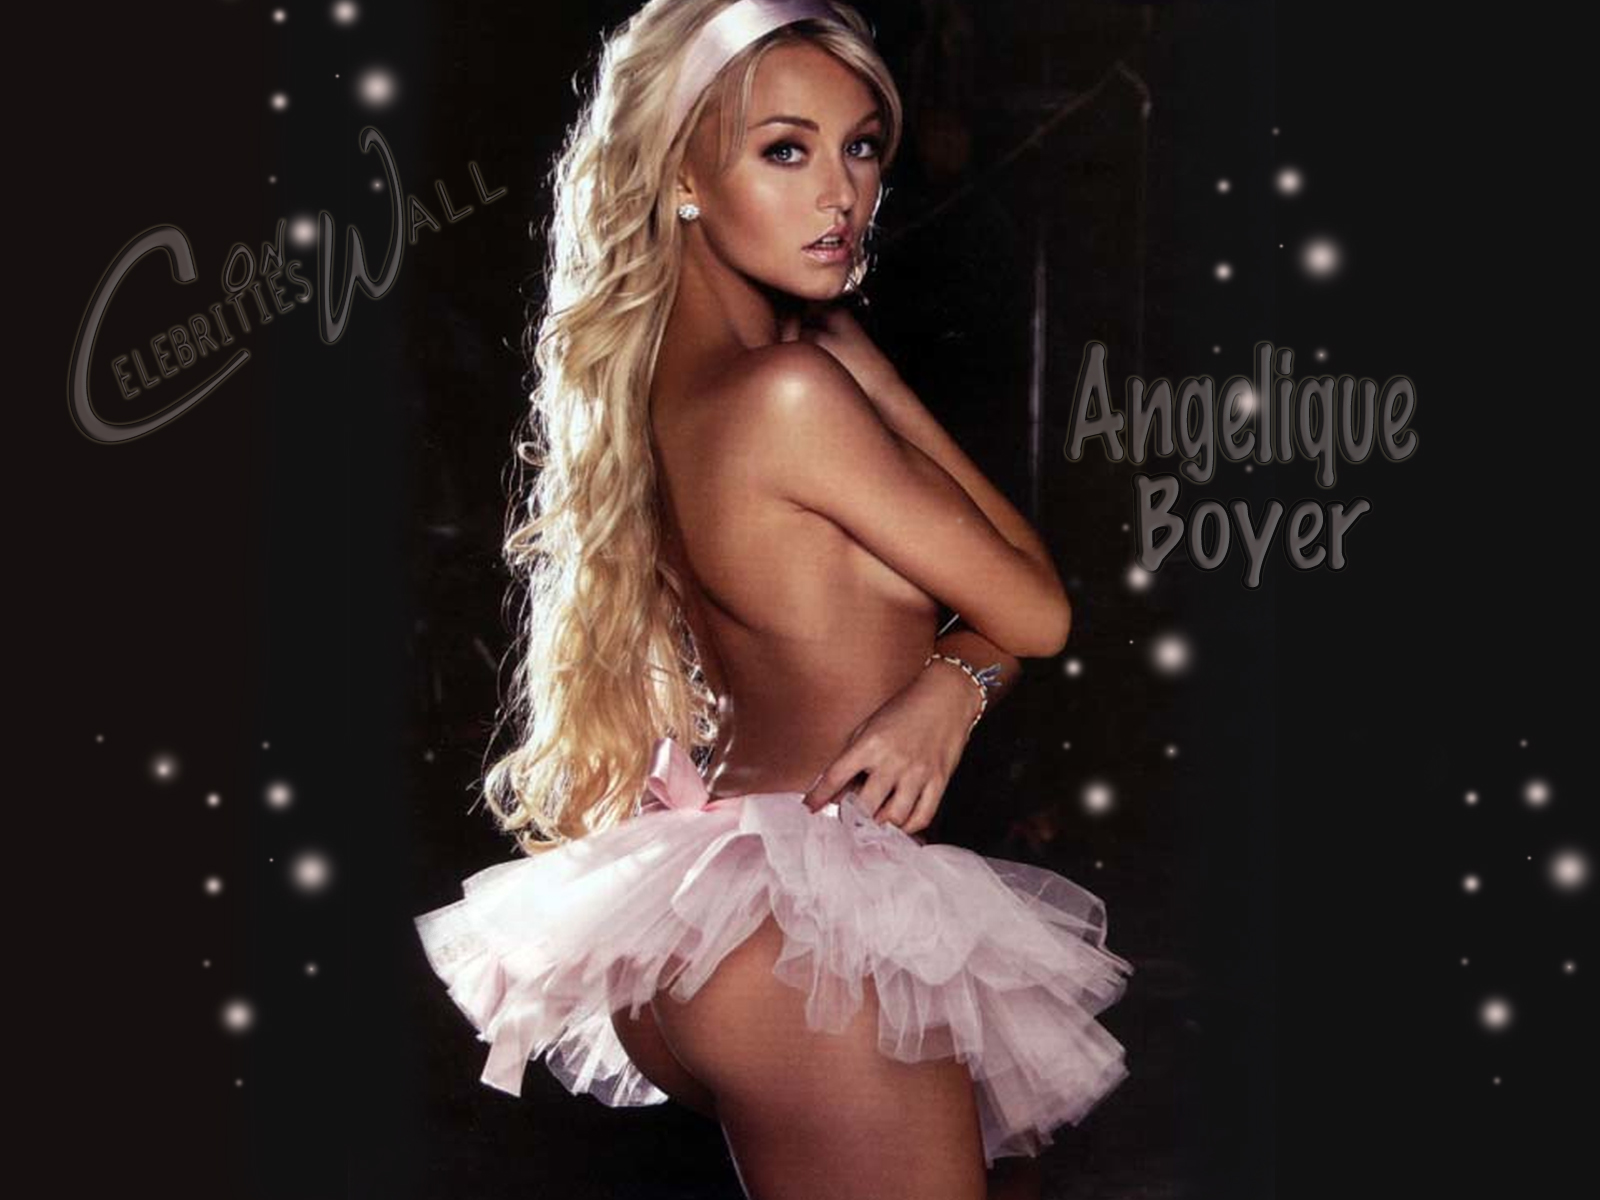 Angelique Boyer - Angelique Boyer Wallpaper (29242404) - Fanpop